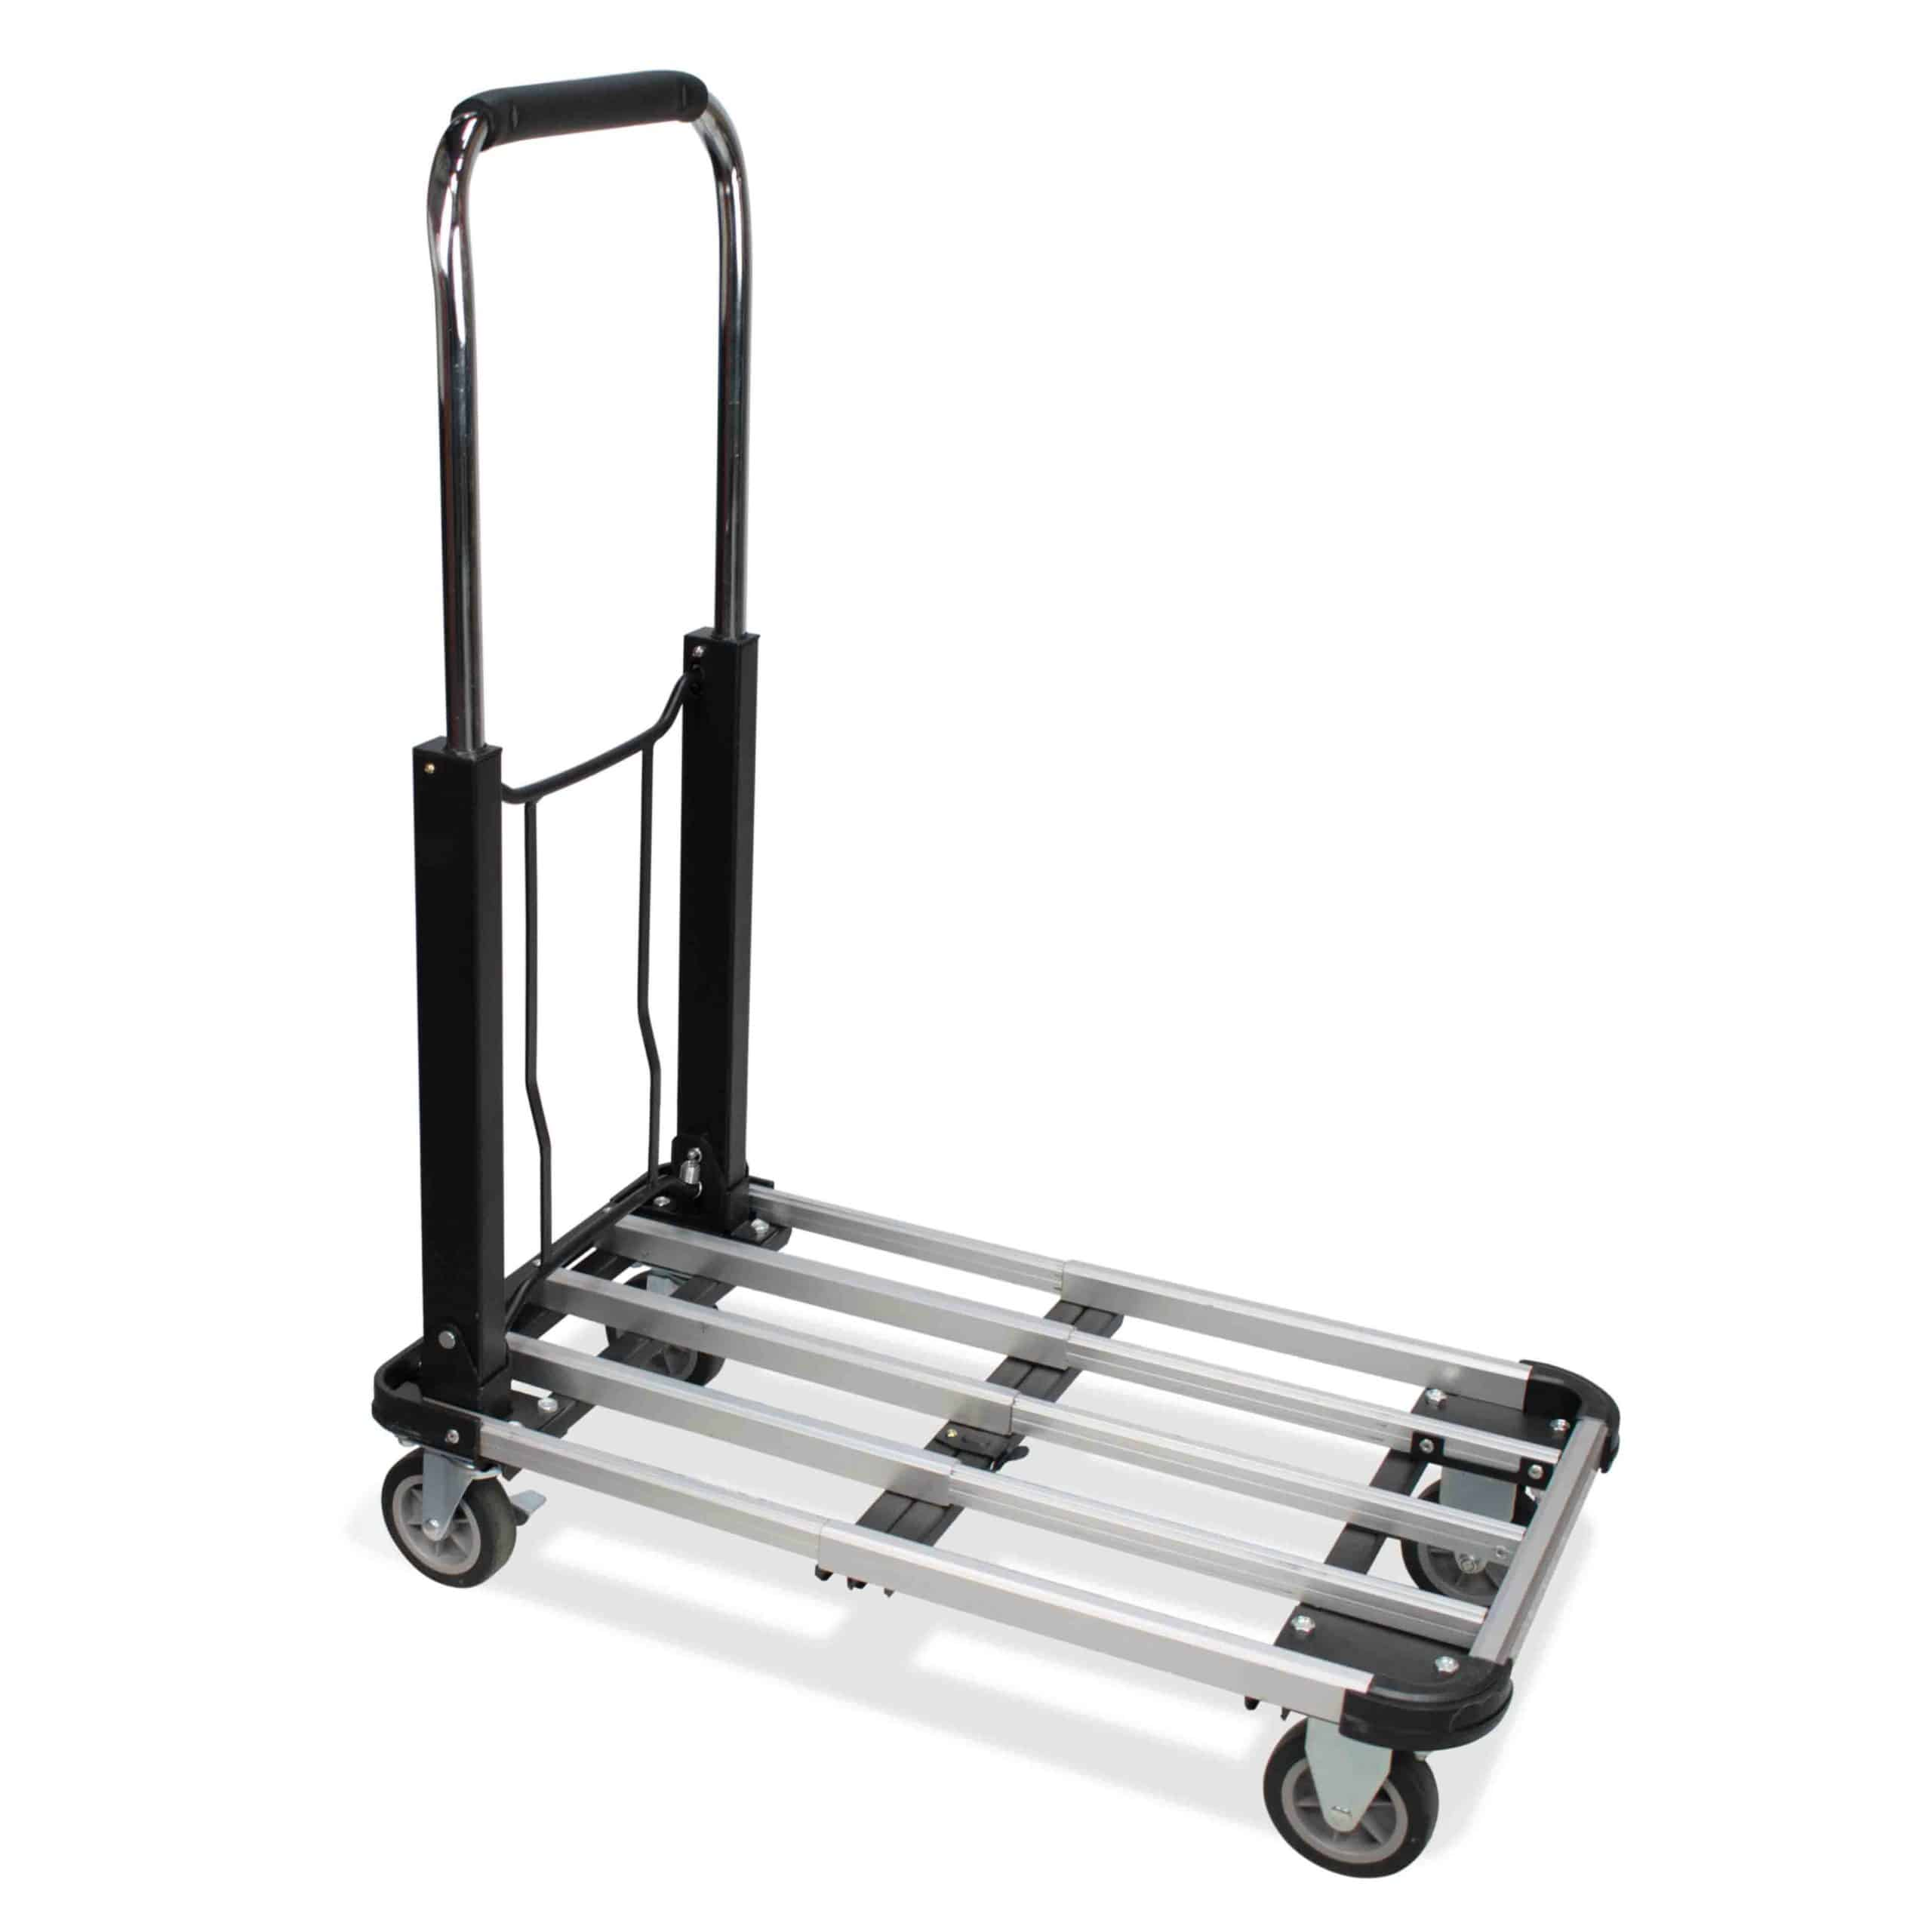 Toptruck Extendable Trolley 100kg Capacity